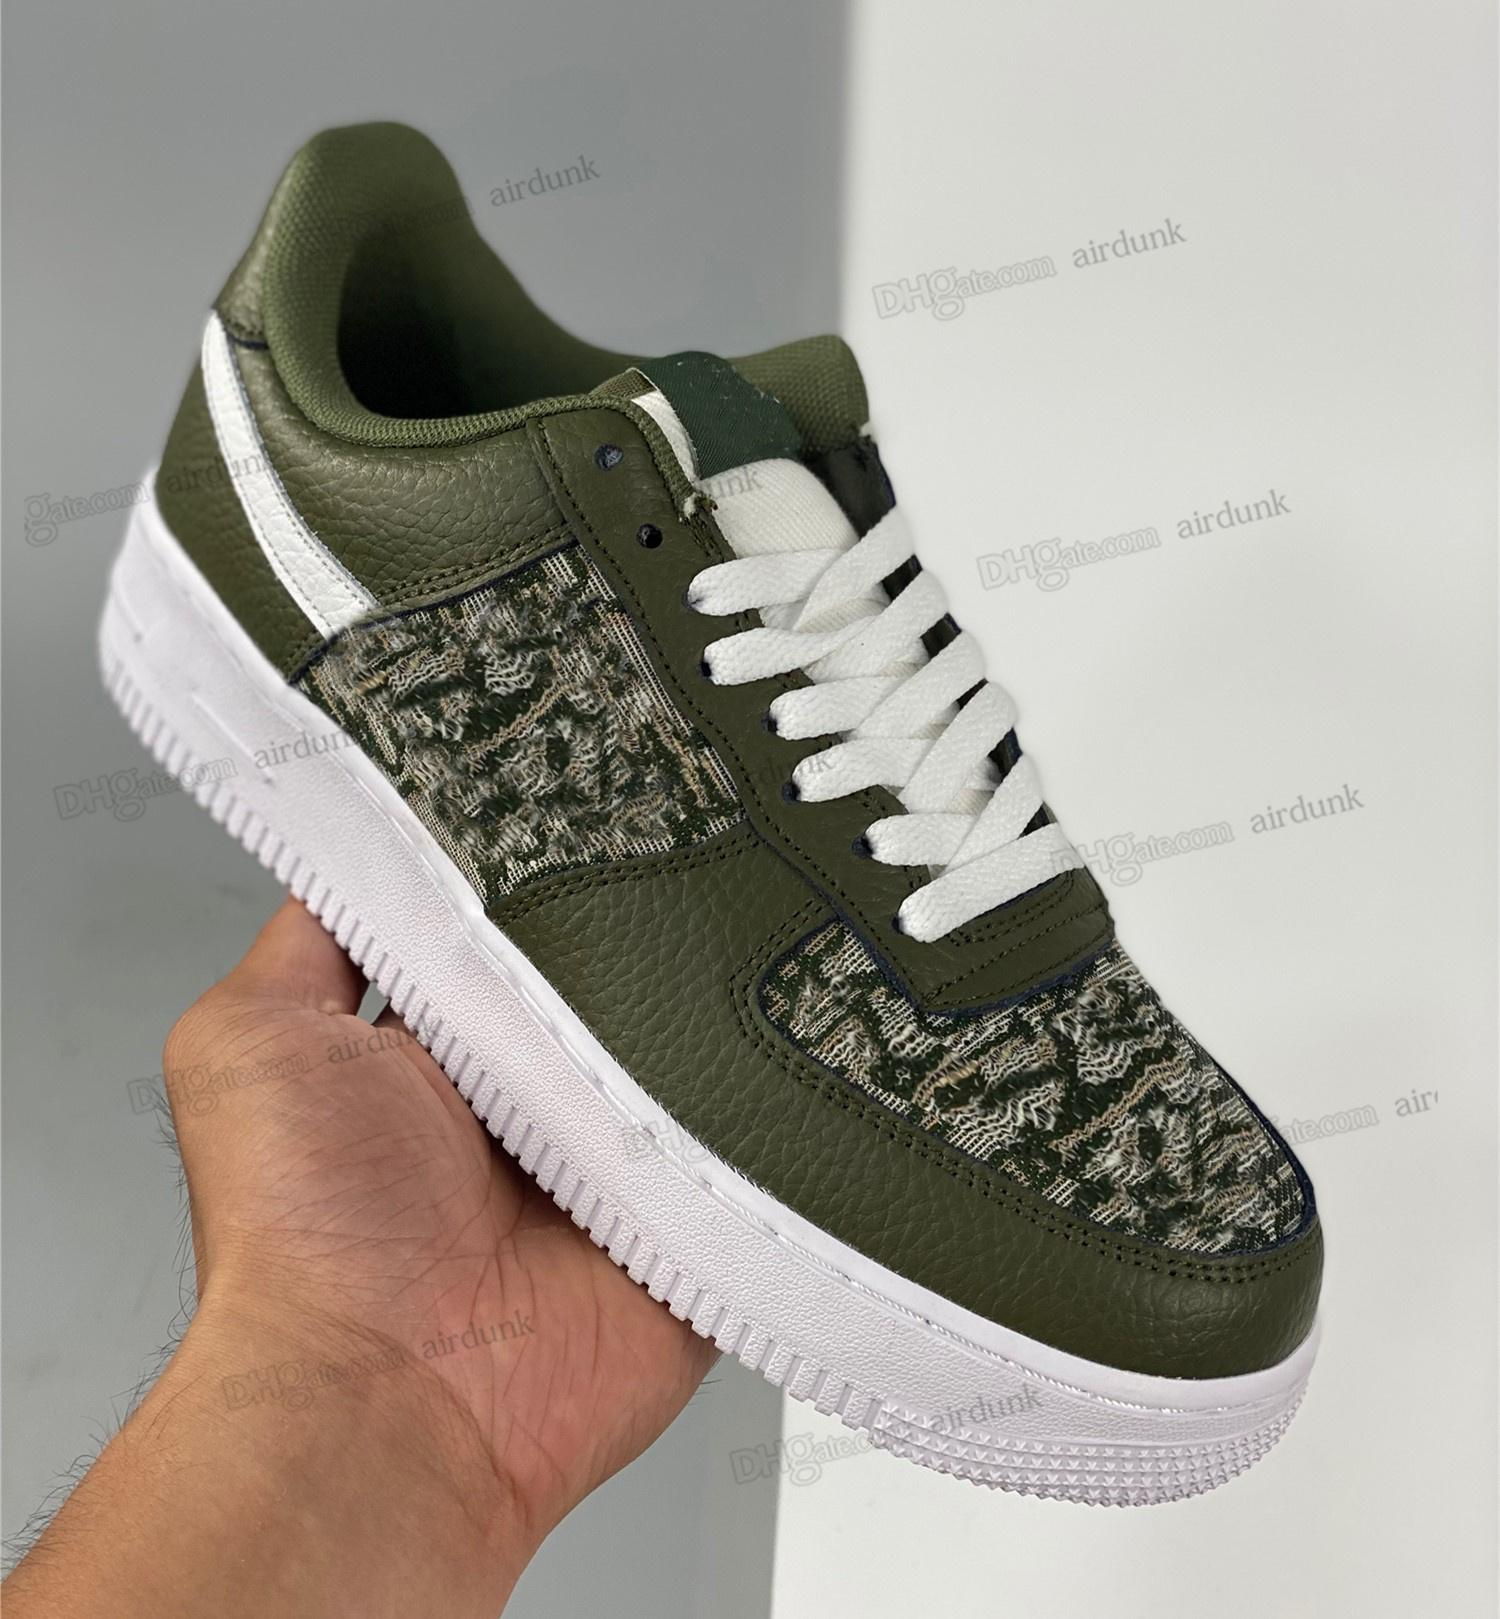 high-quality 1.1 genuine leather green shoe Men Women Airforce Force 1 Low Cut One 1s Casual shoes White Black Dunk Sports Skateboard Classic Trainers High Sneakers DO